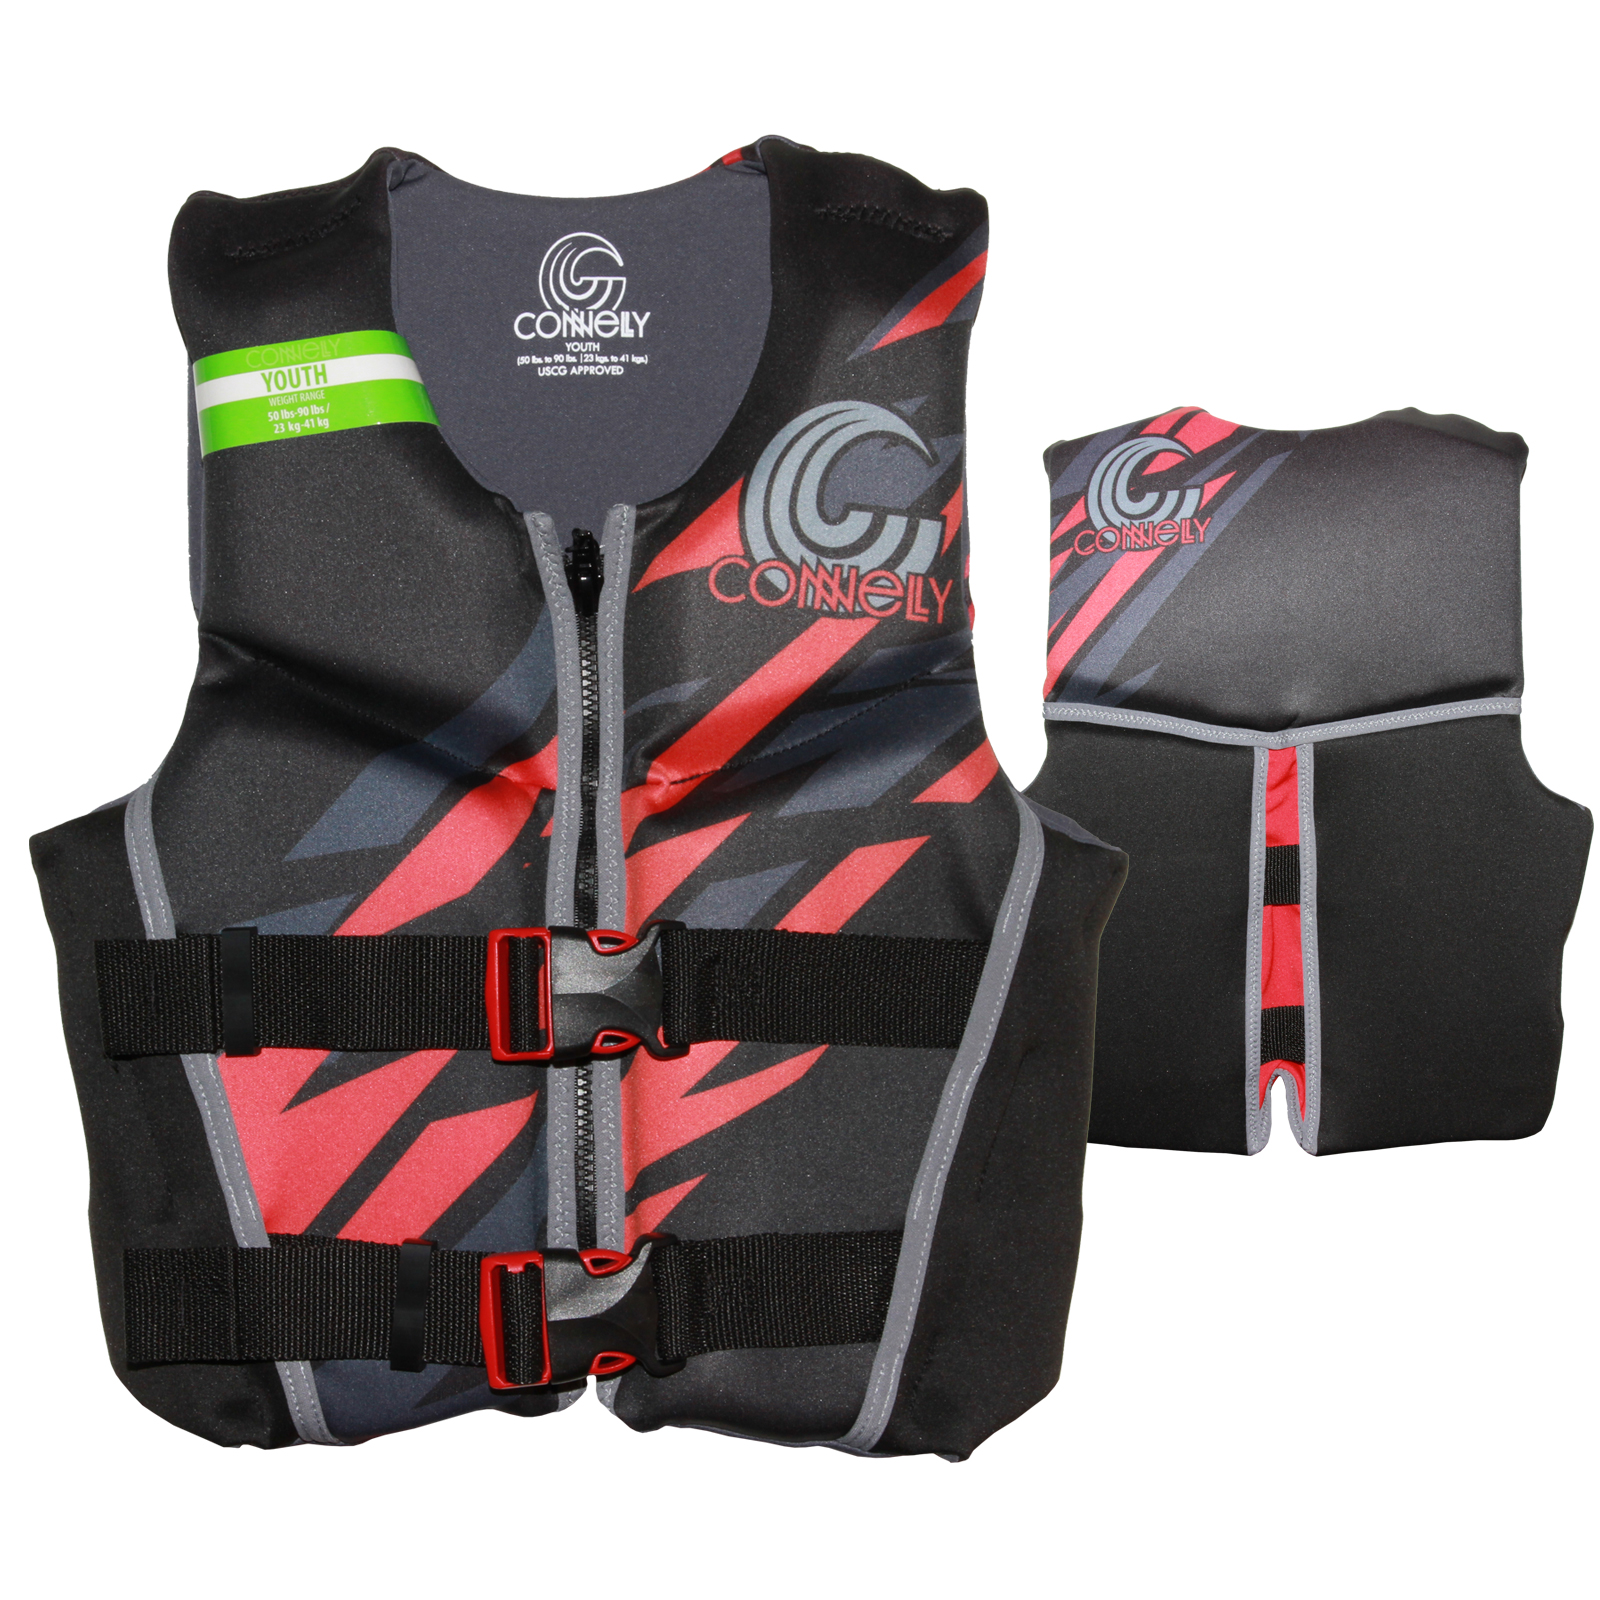 BOYS YOUTH NEO VEST 22-40KG CONNELLY 2018